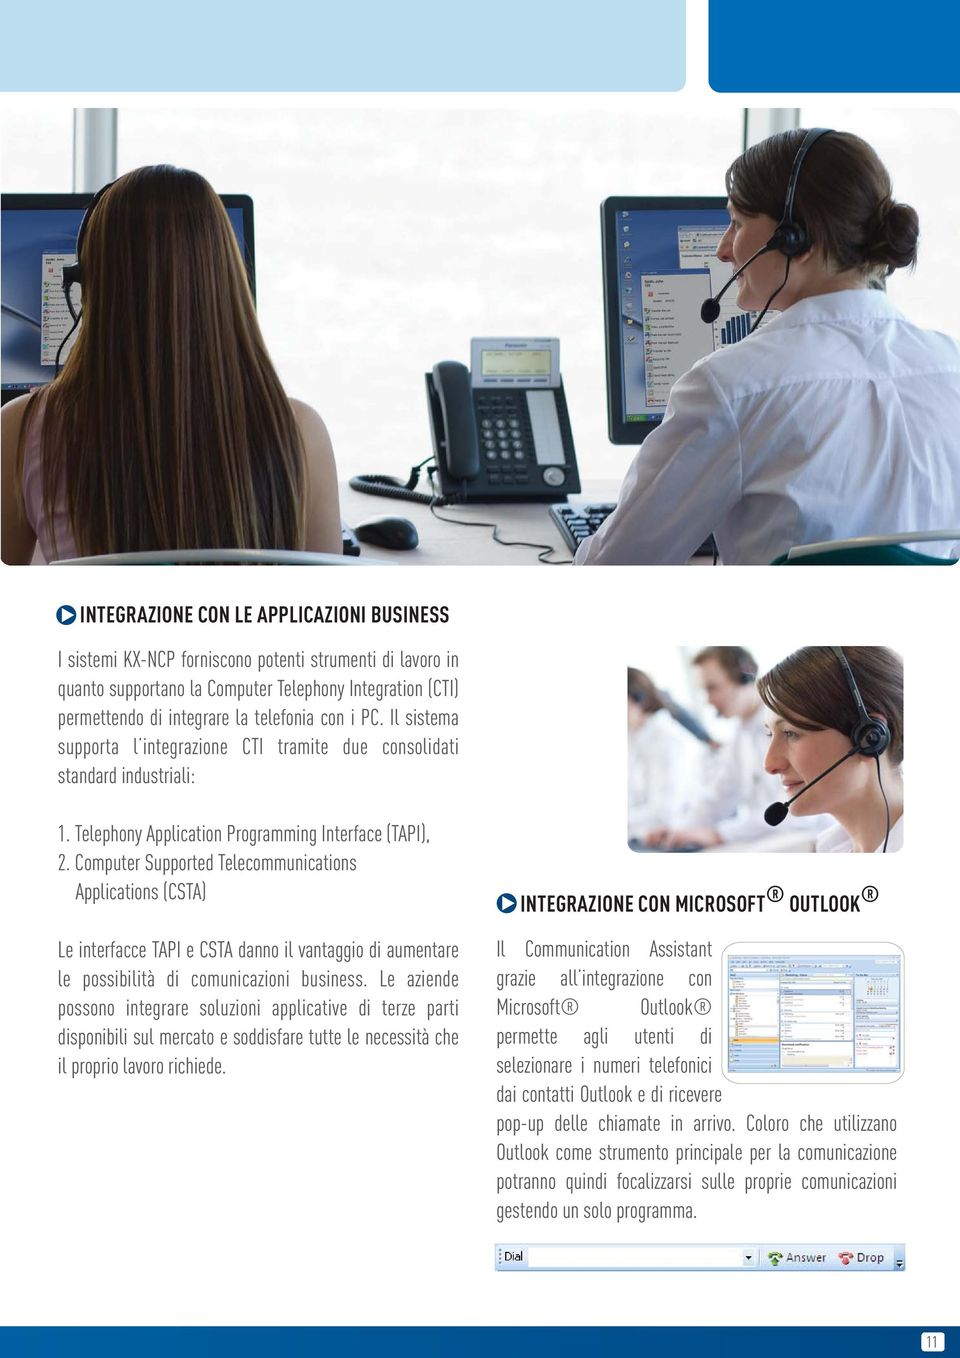 Computer Supported Telecommunications Applications (CSTA) Le interfacce TAPI e CSTA danno il vantaggio di aumentare le possibilità di comunicazioni business.